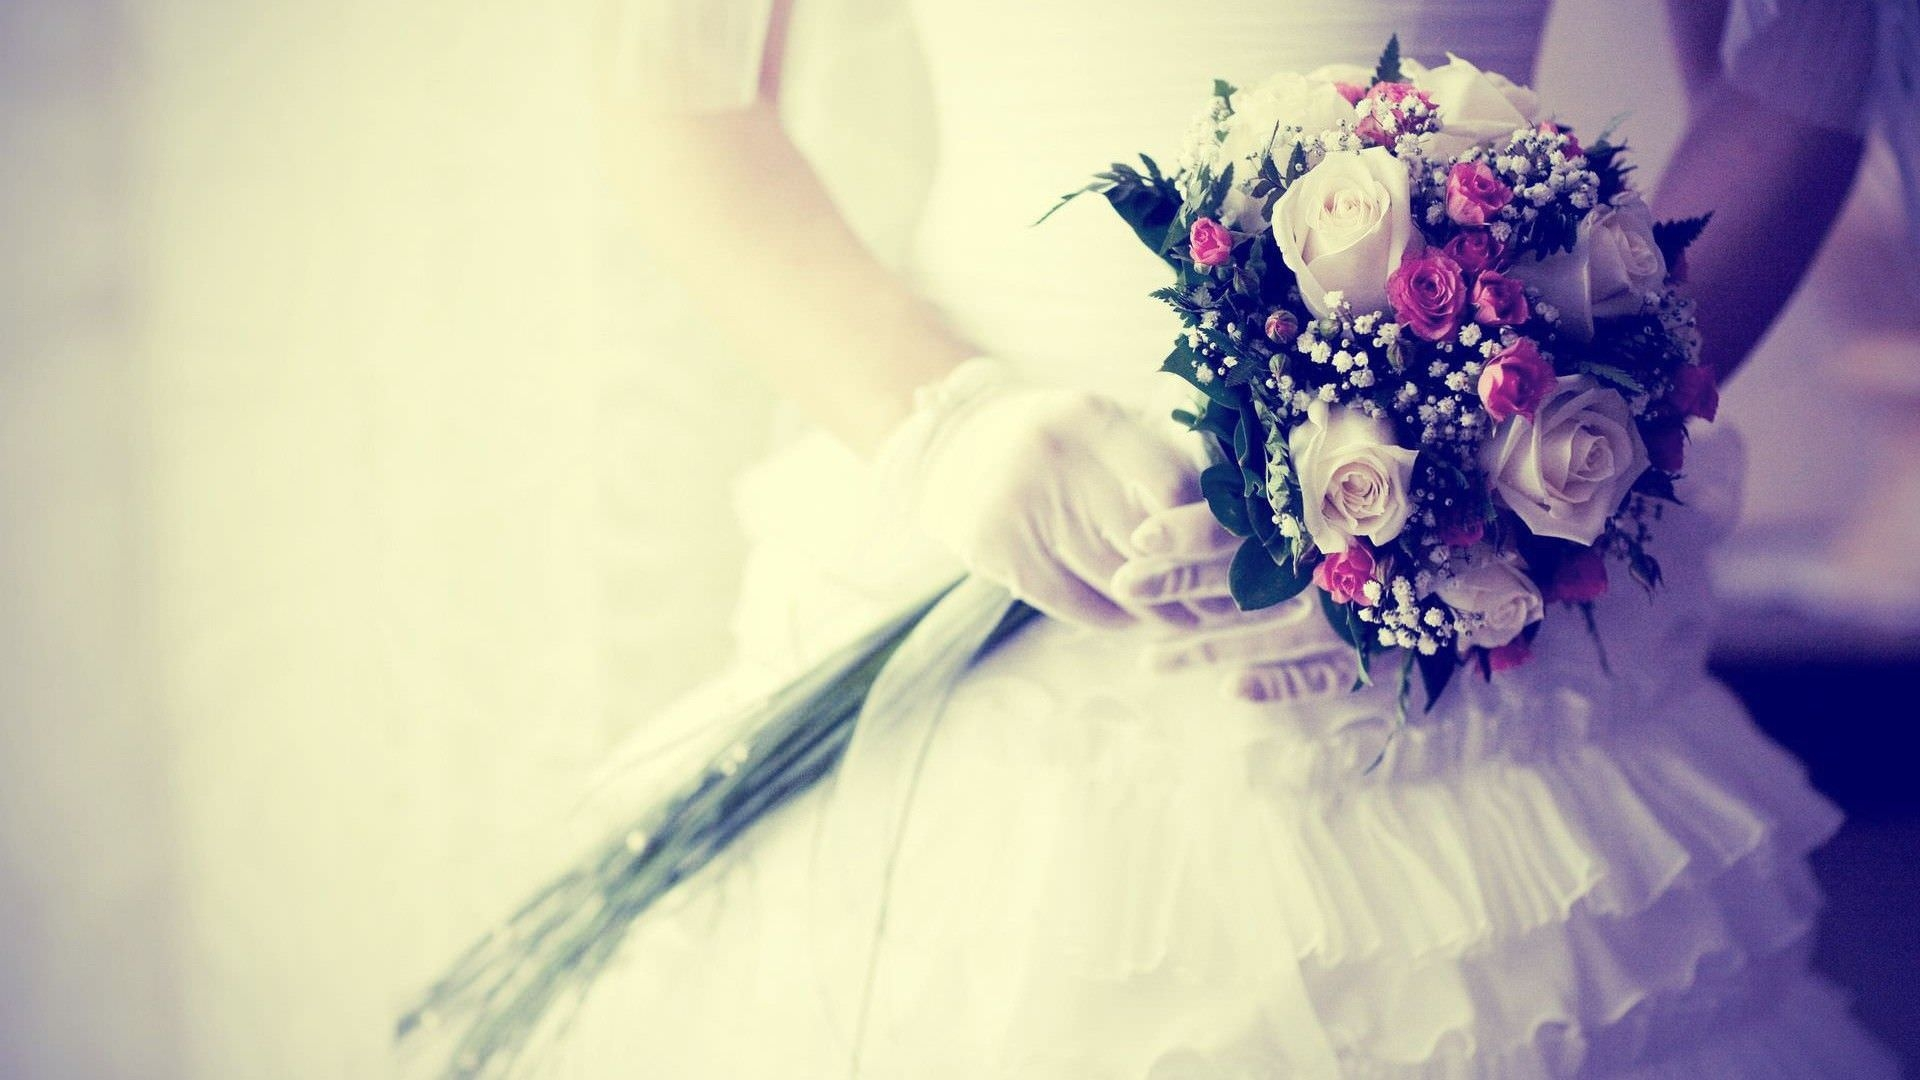 Bride with Flowers Wedding Background